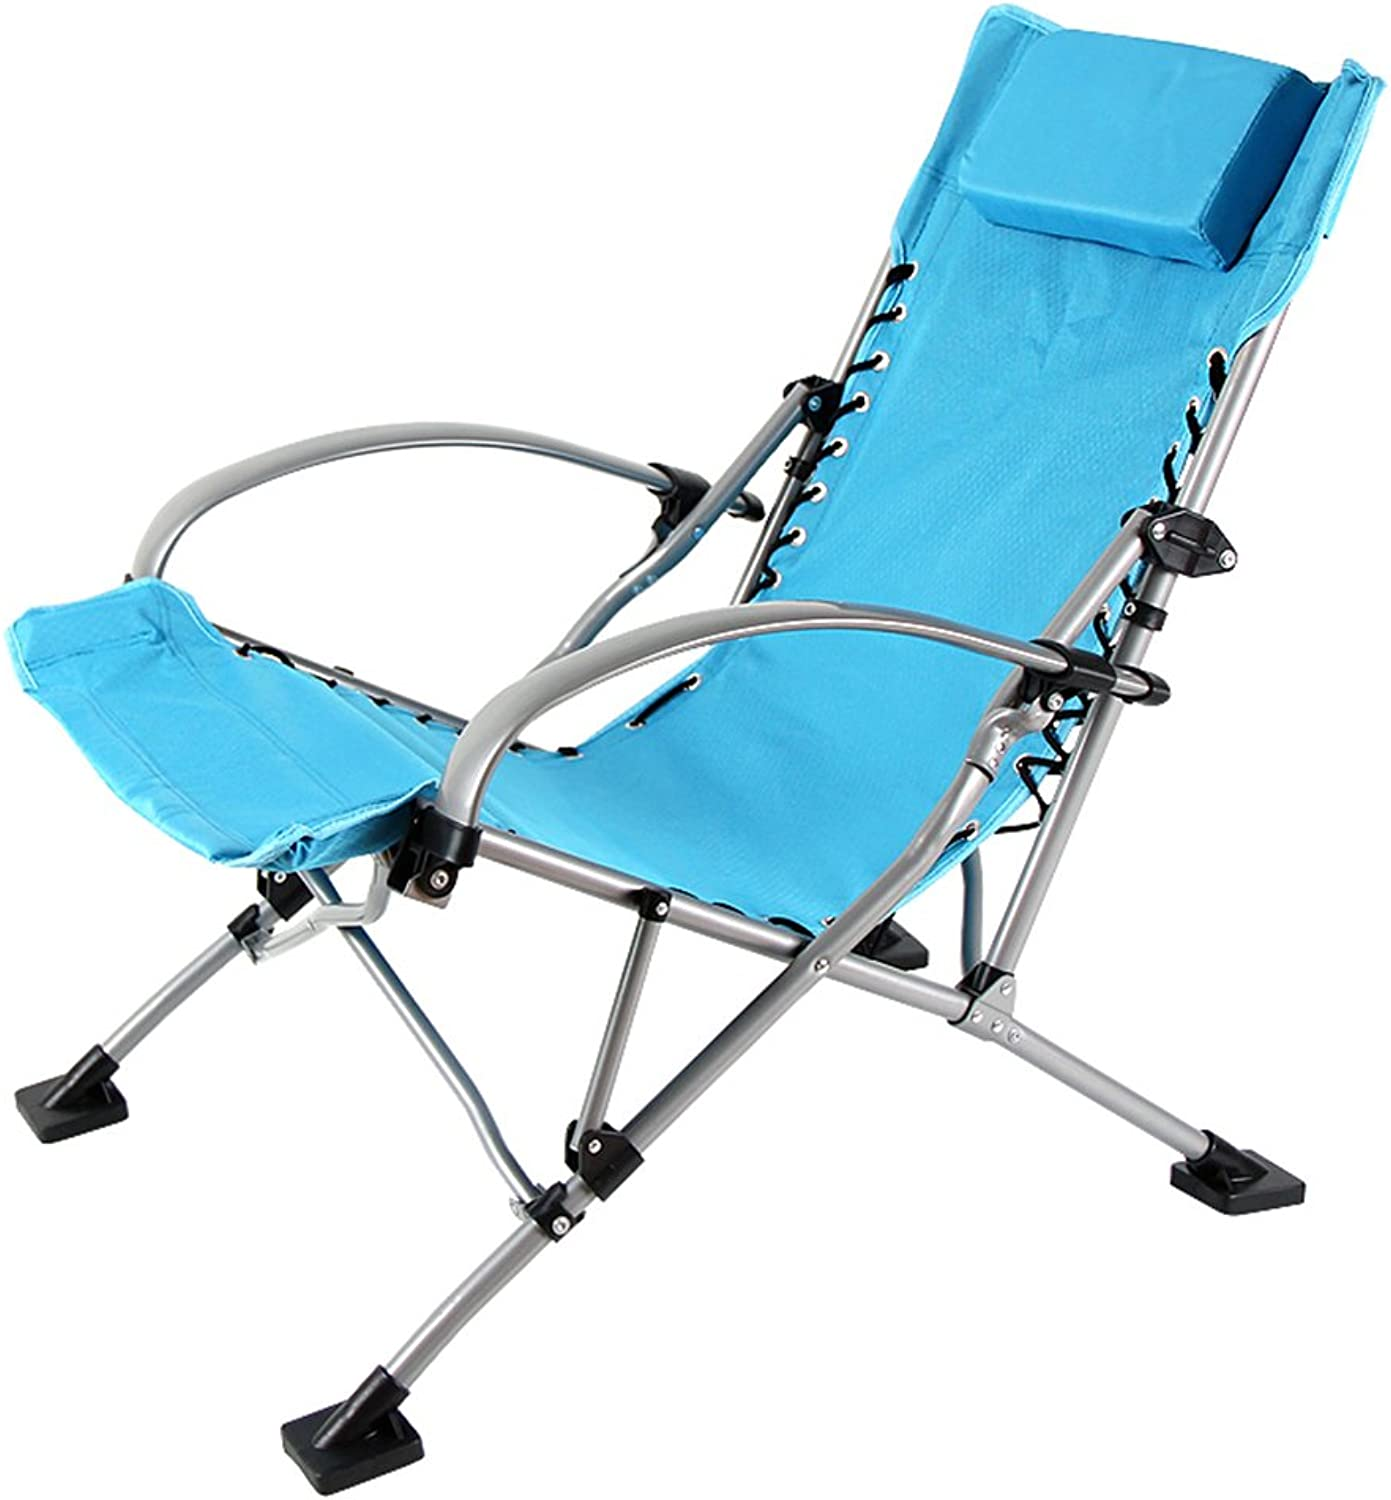 XRXY Multifunction Comfortable Portable Folding Chair Alloy Reinforce Office Siesta Chair Outdoor Portable Space-Saving Beach Fishing Lounge Chair